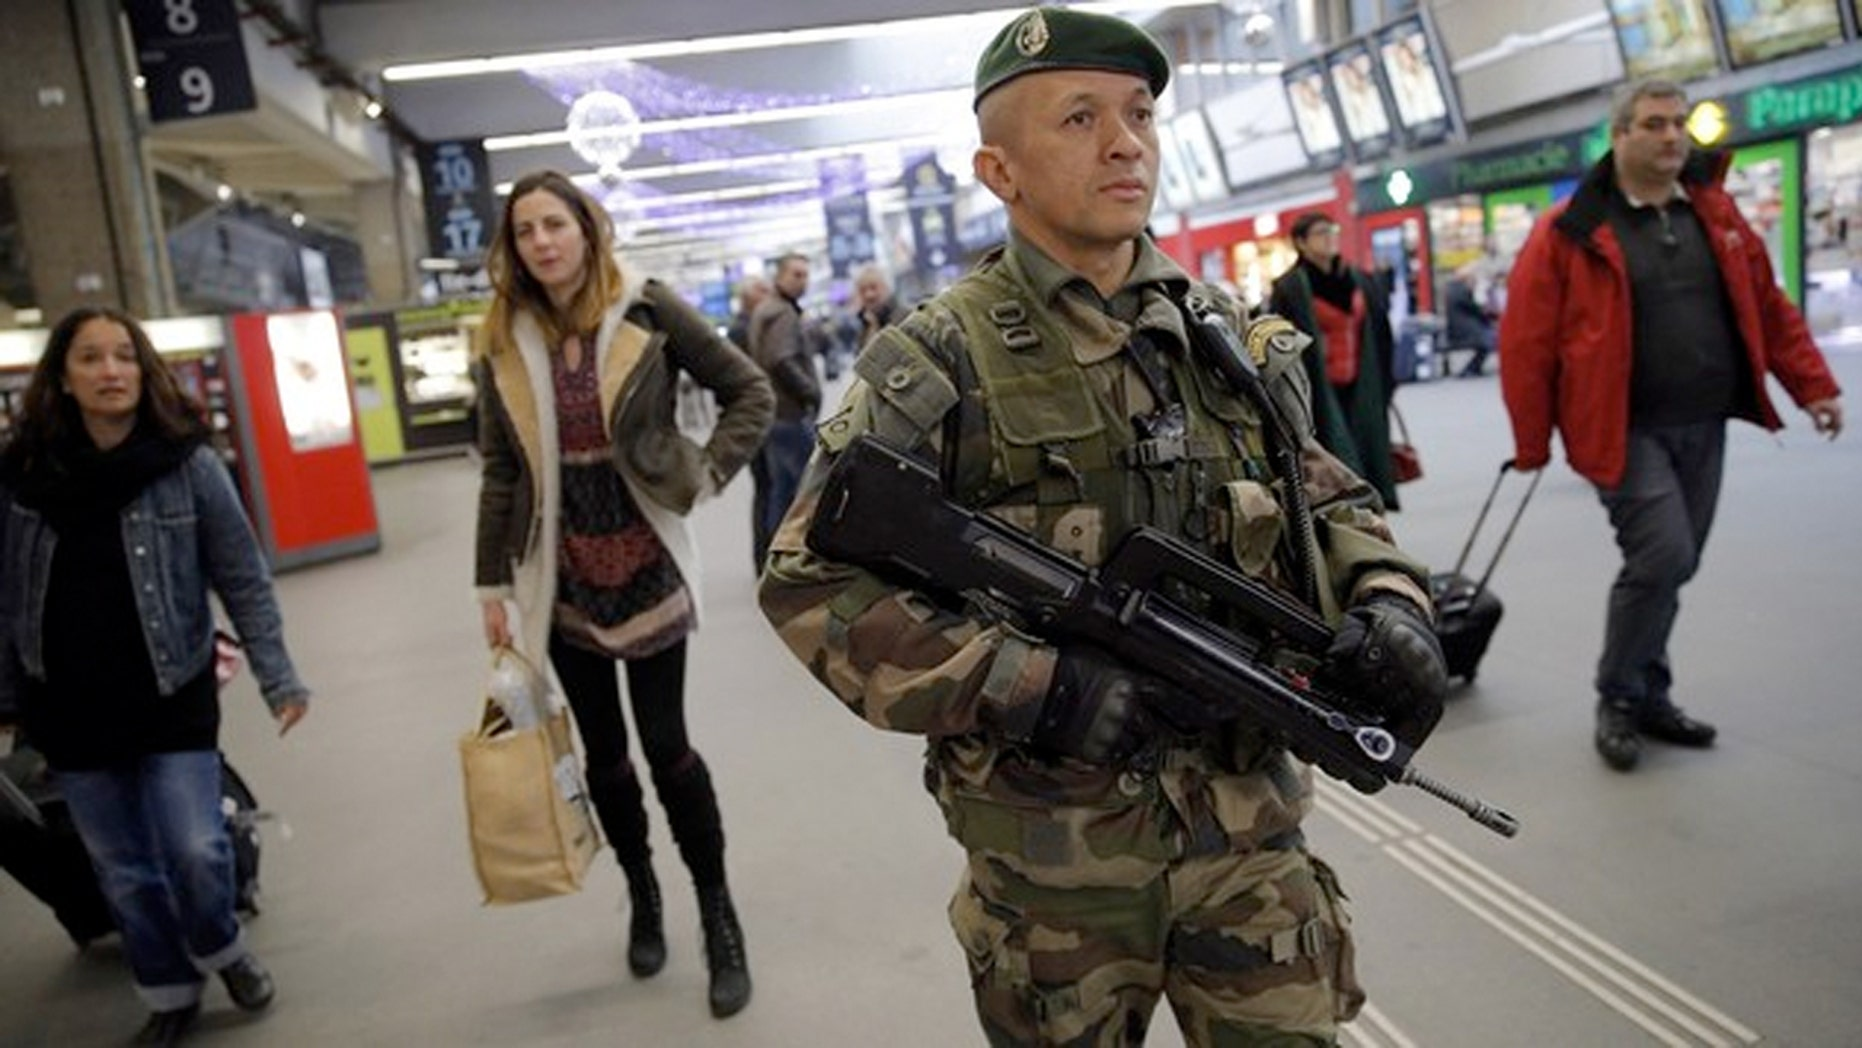 As of late Friday evening, Charles de Gaulle Airport remains open and trains are running, although security remains high.